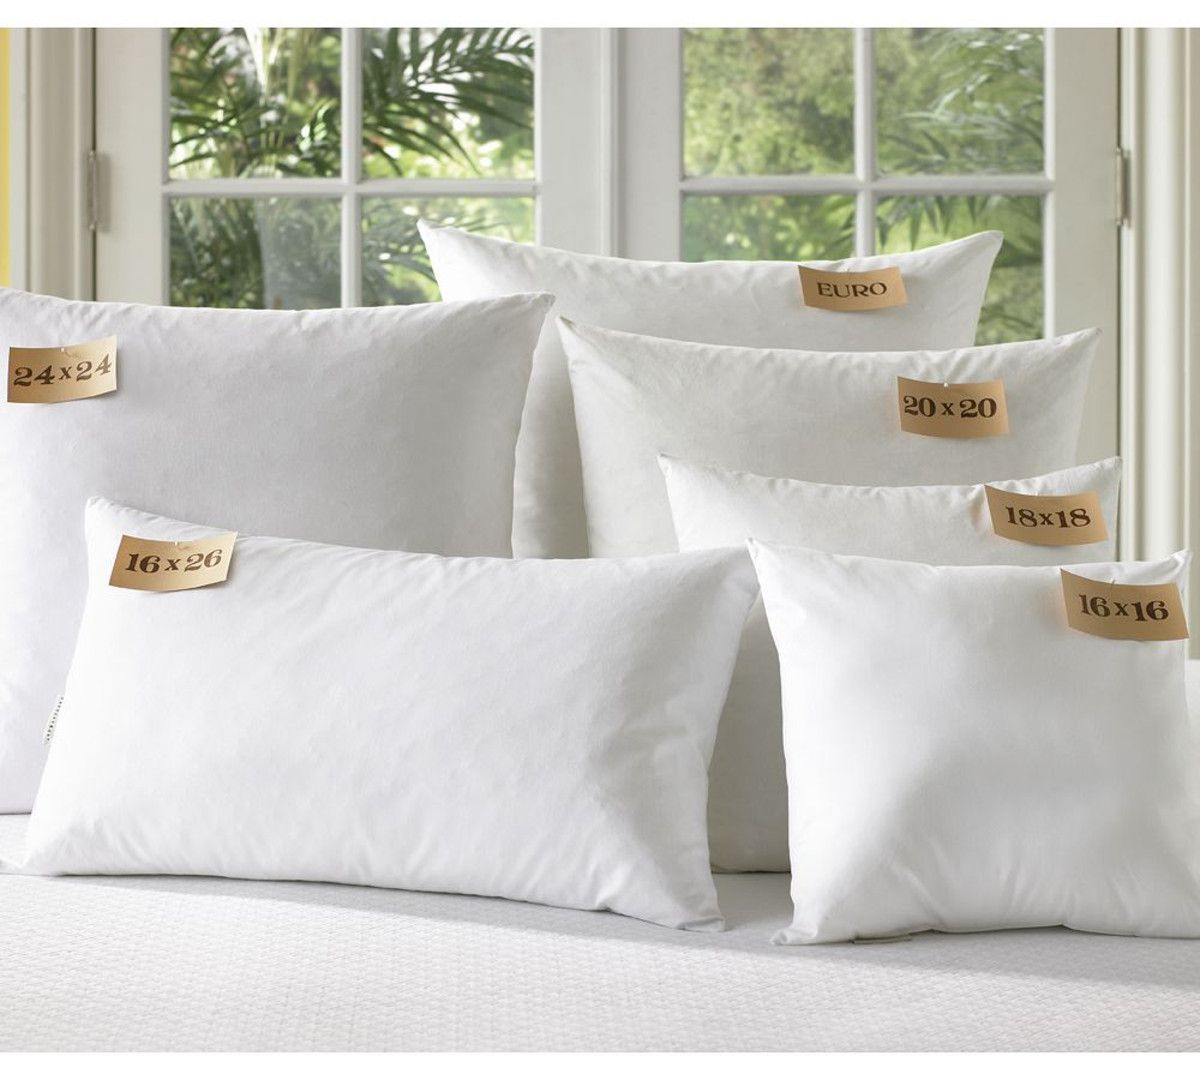 Pottery Barn Pillow Inserts Entrancing Featherdown Blend Pillow & Cushion Inserts  Pottery Barn Au Decorating Design